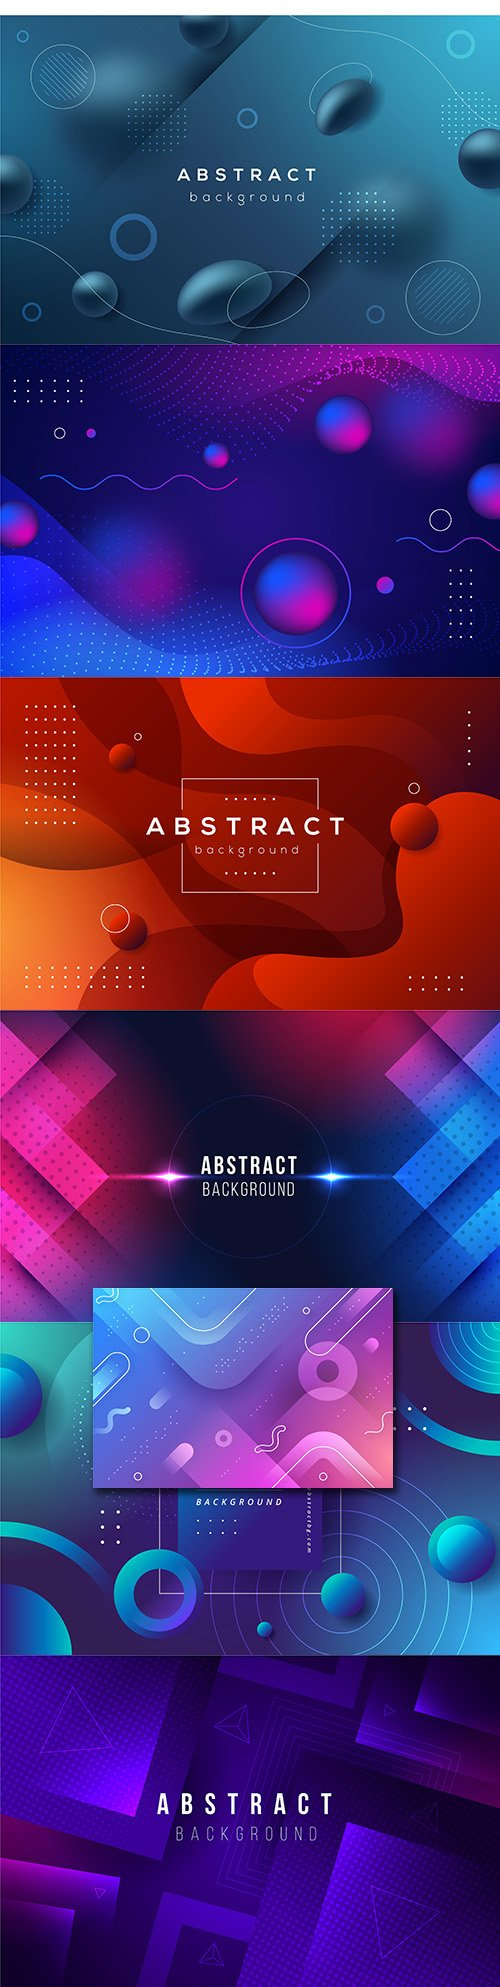 Gradient abstract design geometric background shape